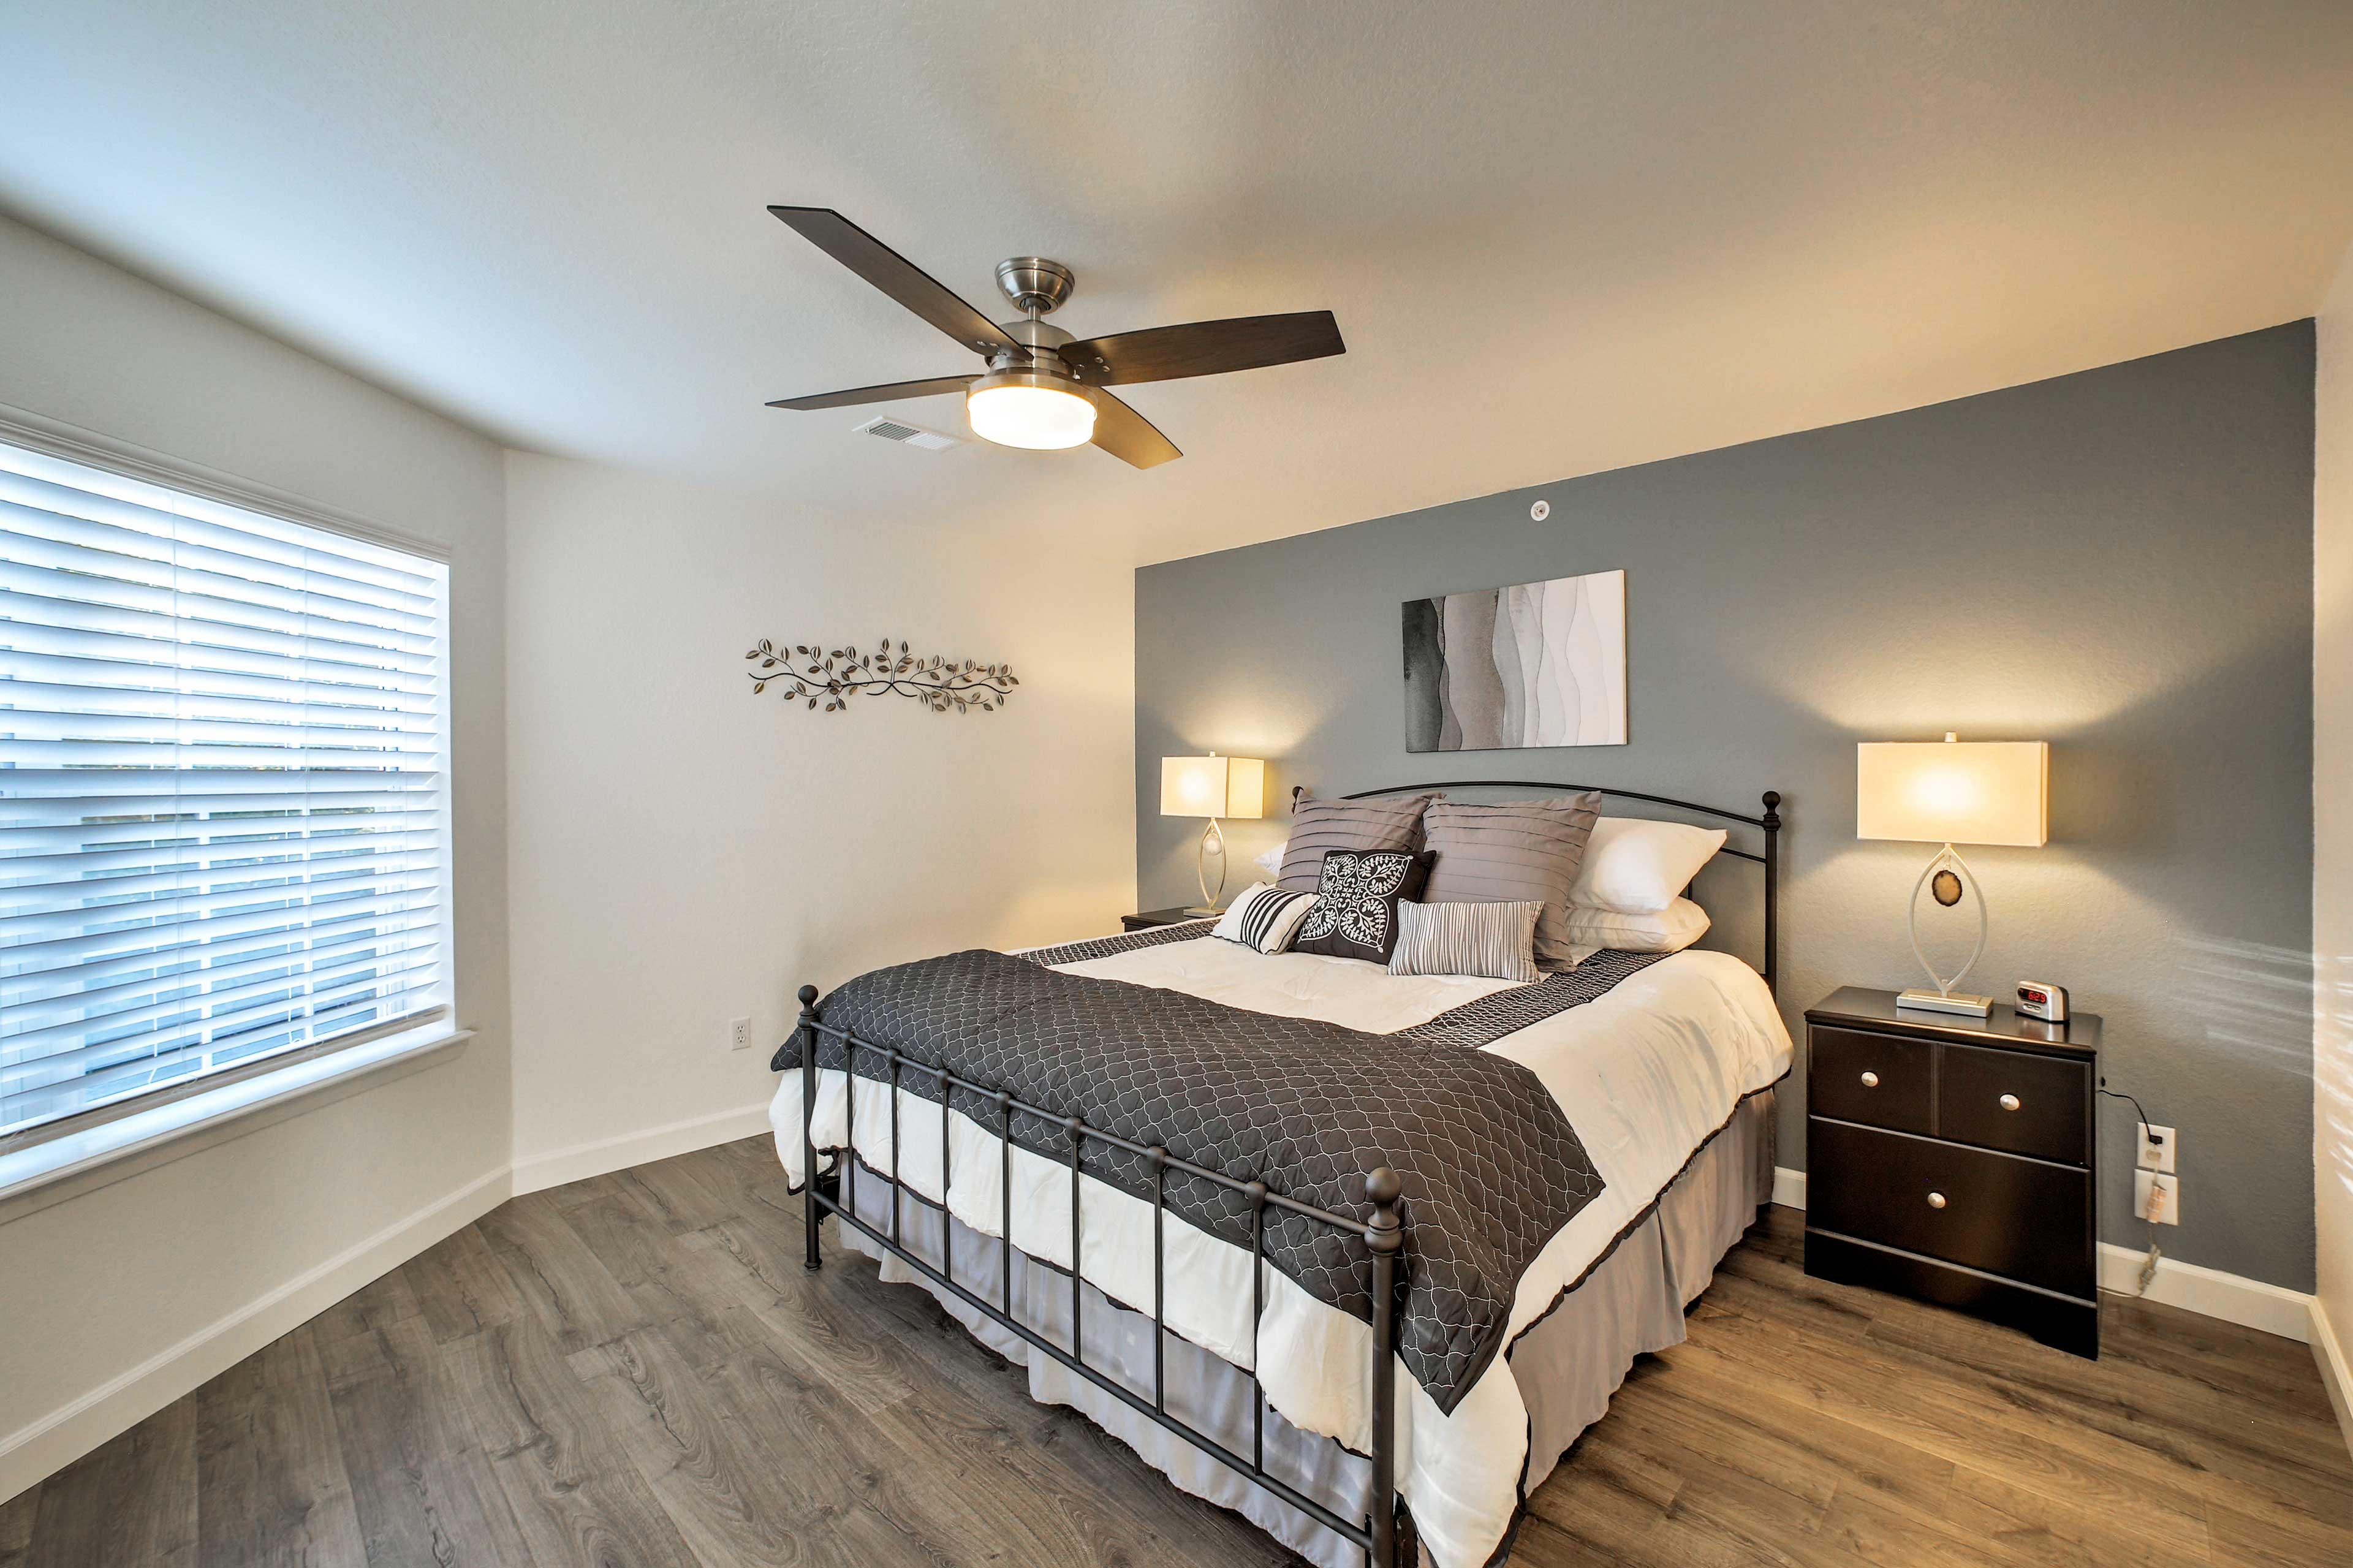 The master bedroom also houses a king-sized bed.